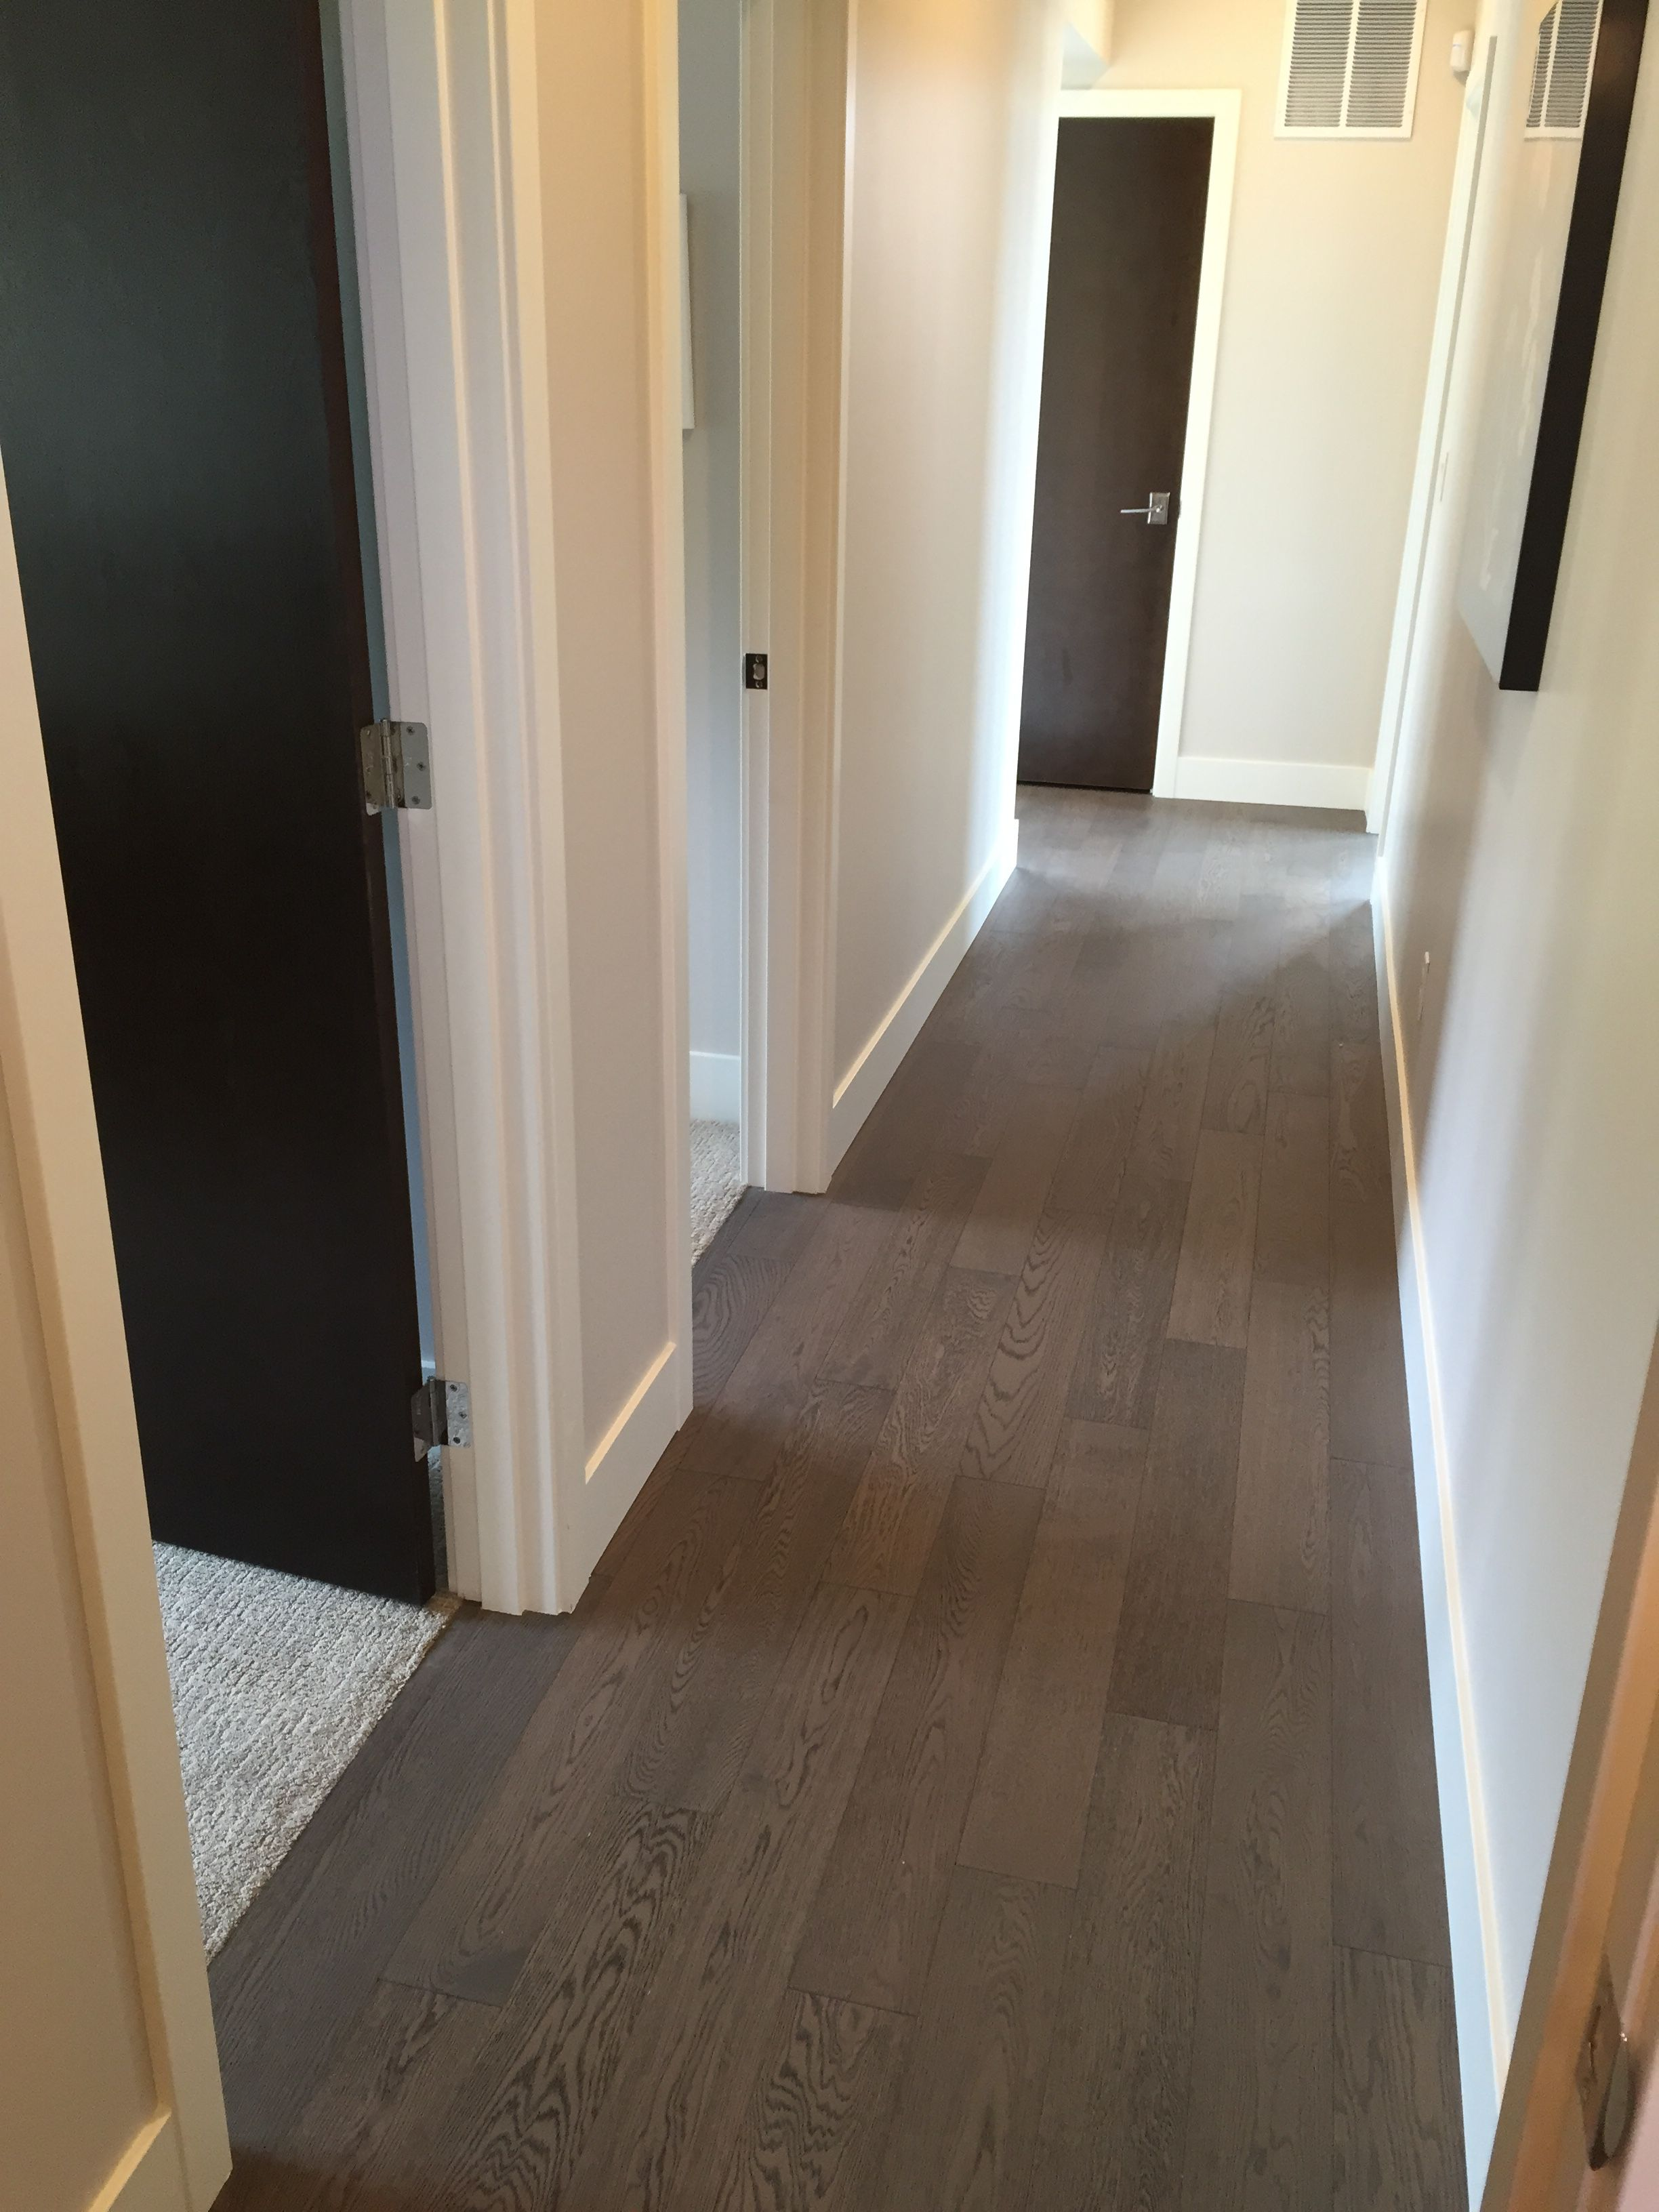 Upper Hall Flooring Similar To Basement Hall Wood Flooring In Hall With Carpet In Bedrooms And Tile In Bathrooms Hall Flooring Bedroom Carpet Dream House